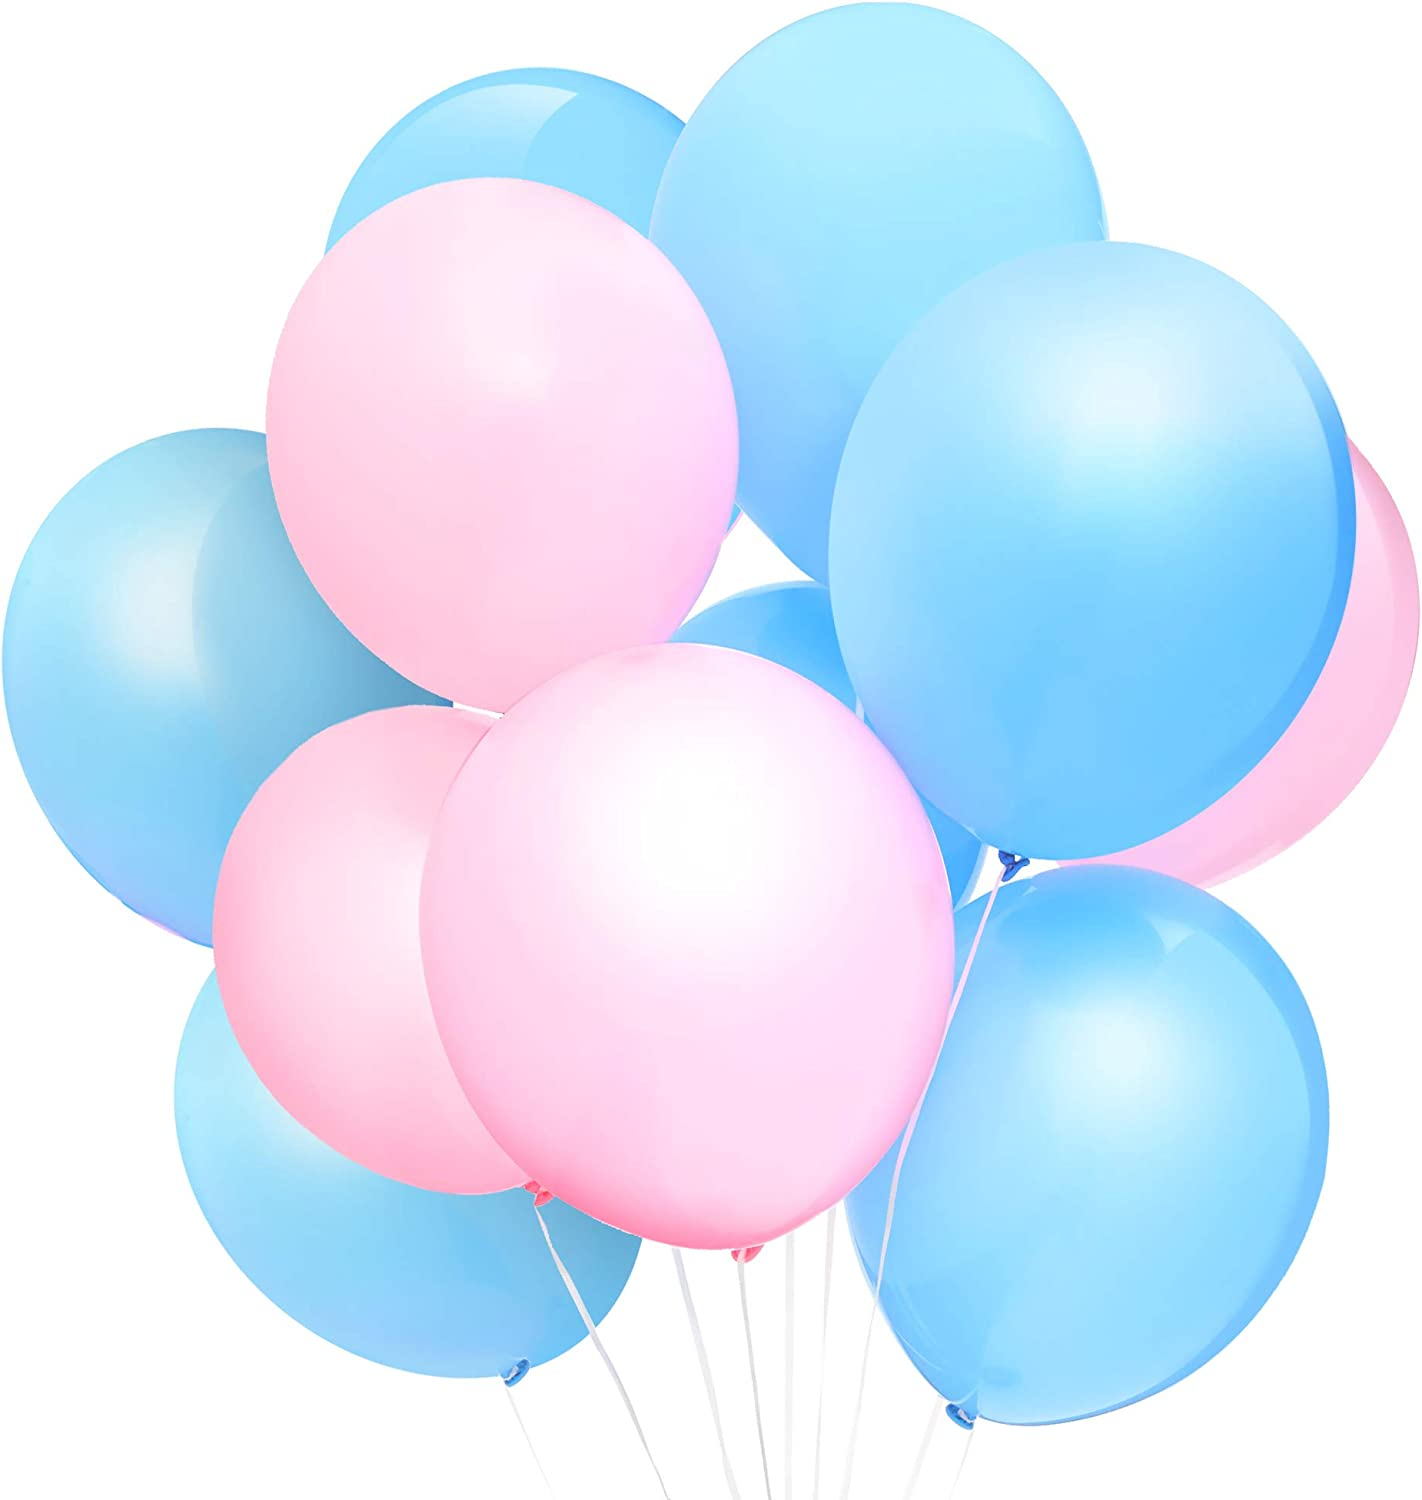 Blue Panda Gender Reveal Party Balloons (100 Count), Pink and Blue